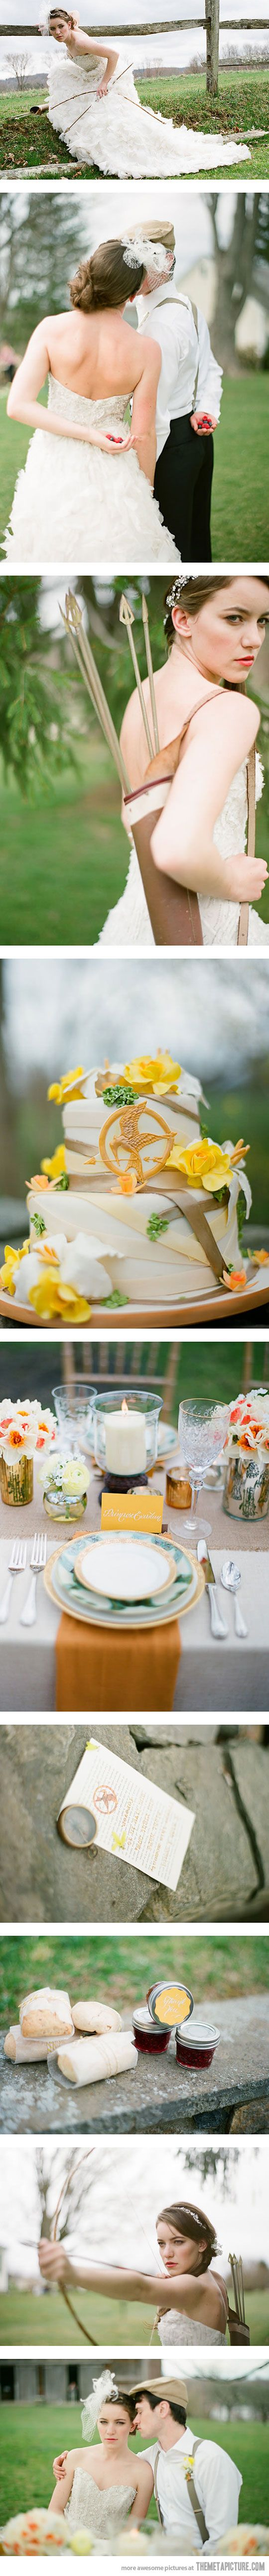 What pictures represent katniss everdeen yahoo answers - The Hunger Games Themed Wedding